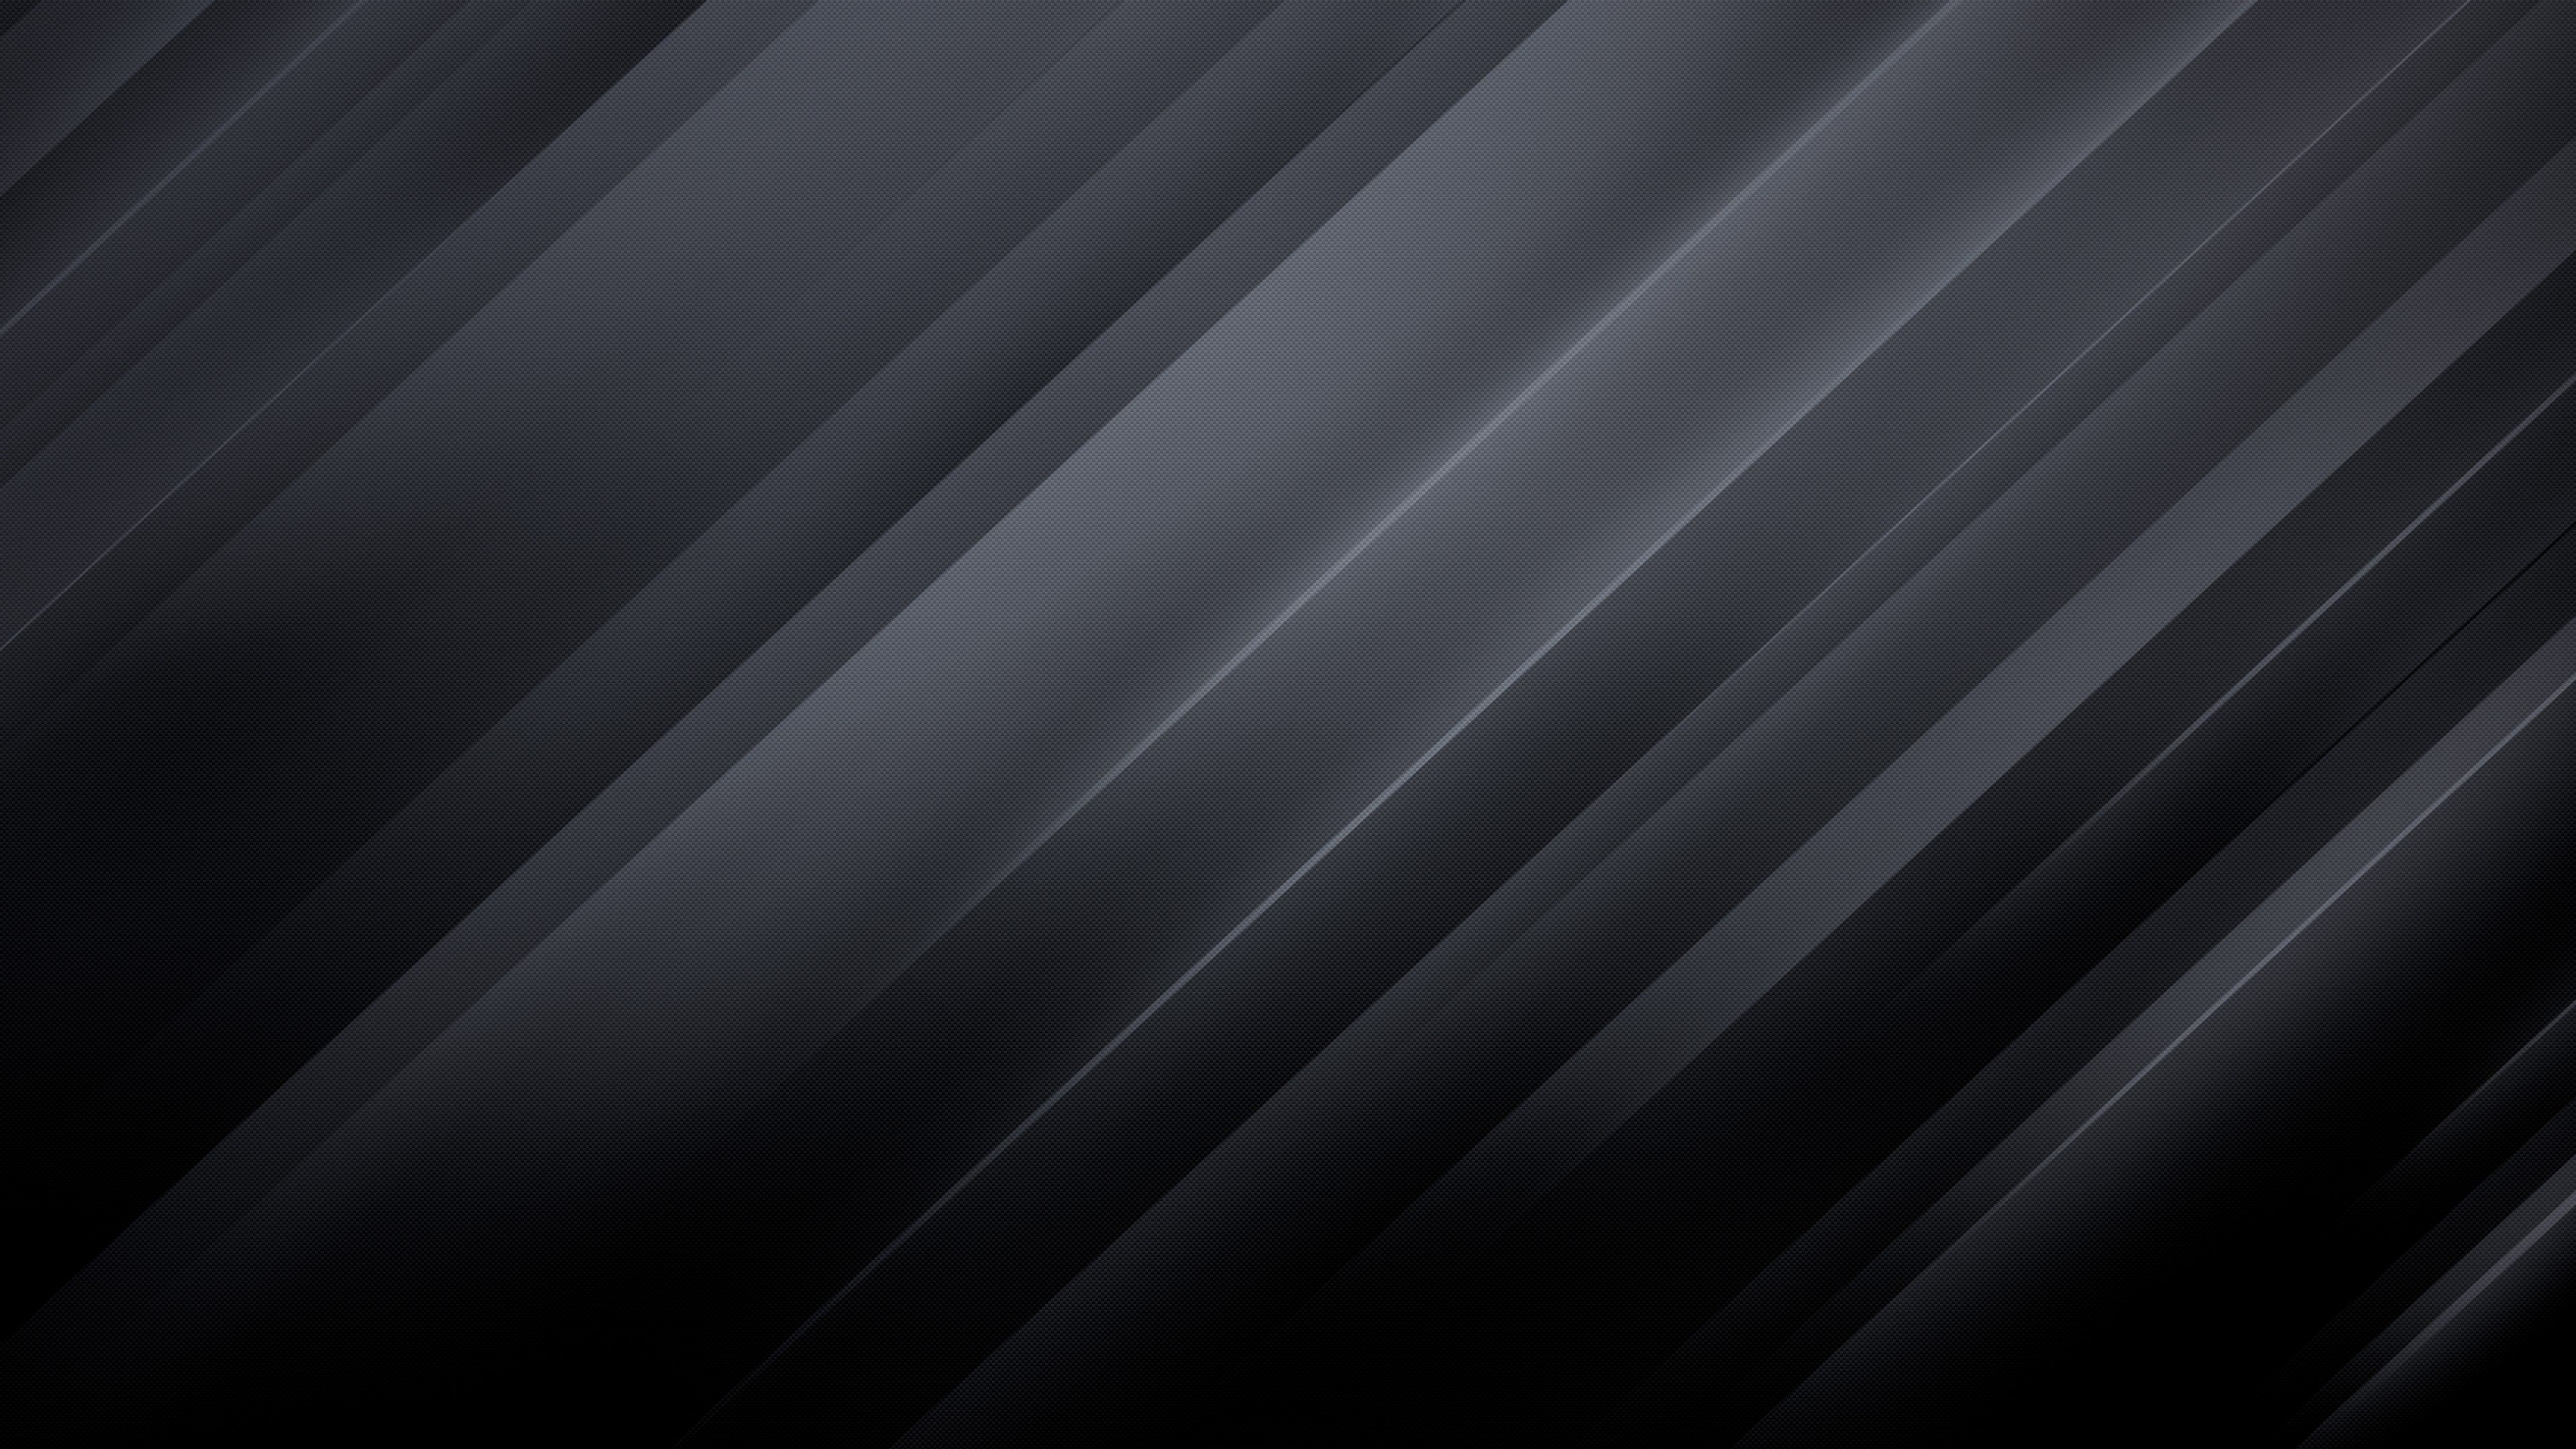 4k Black Abstract Wallpaper Http Wallpapersko Com 4k Black Abstract Wallpaper Html 4kblackabstractwallpa Abstract Wallpaper Black Wallpaper Black Abstract